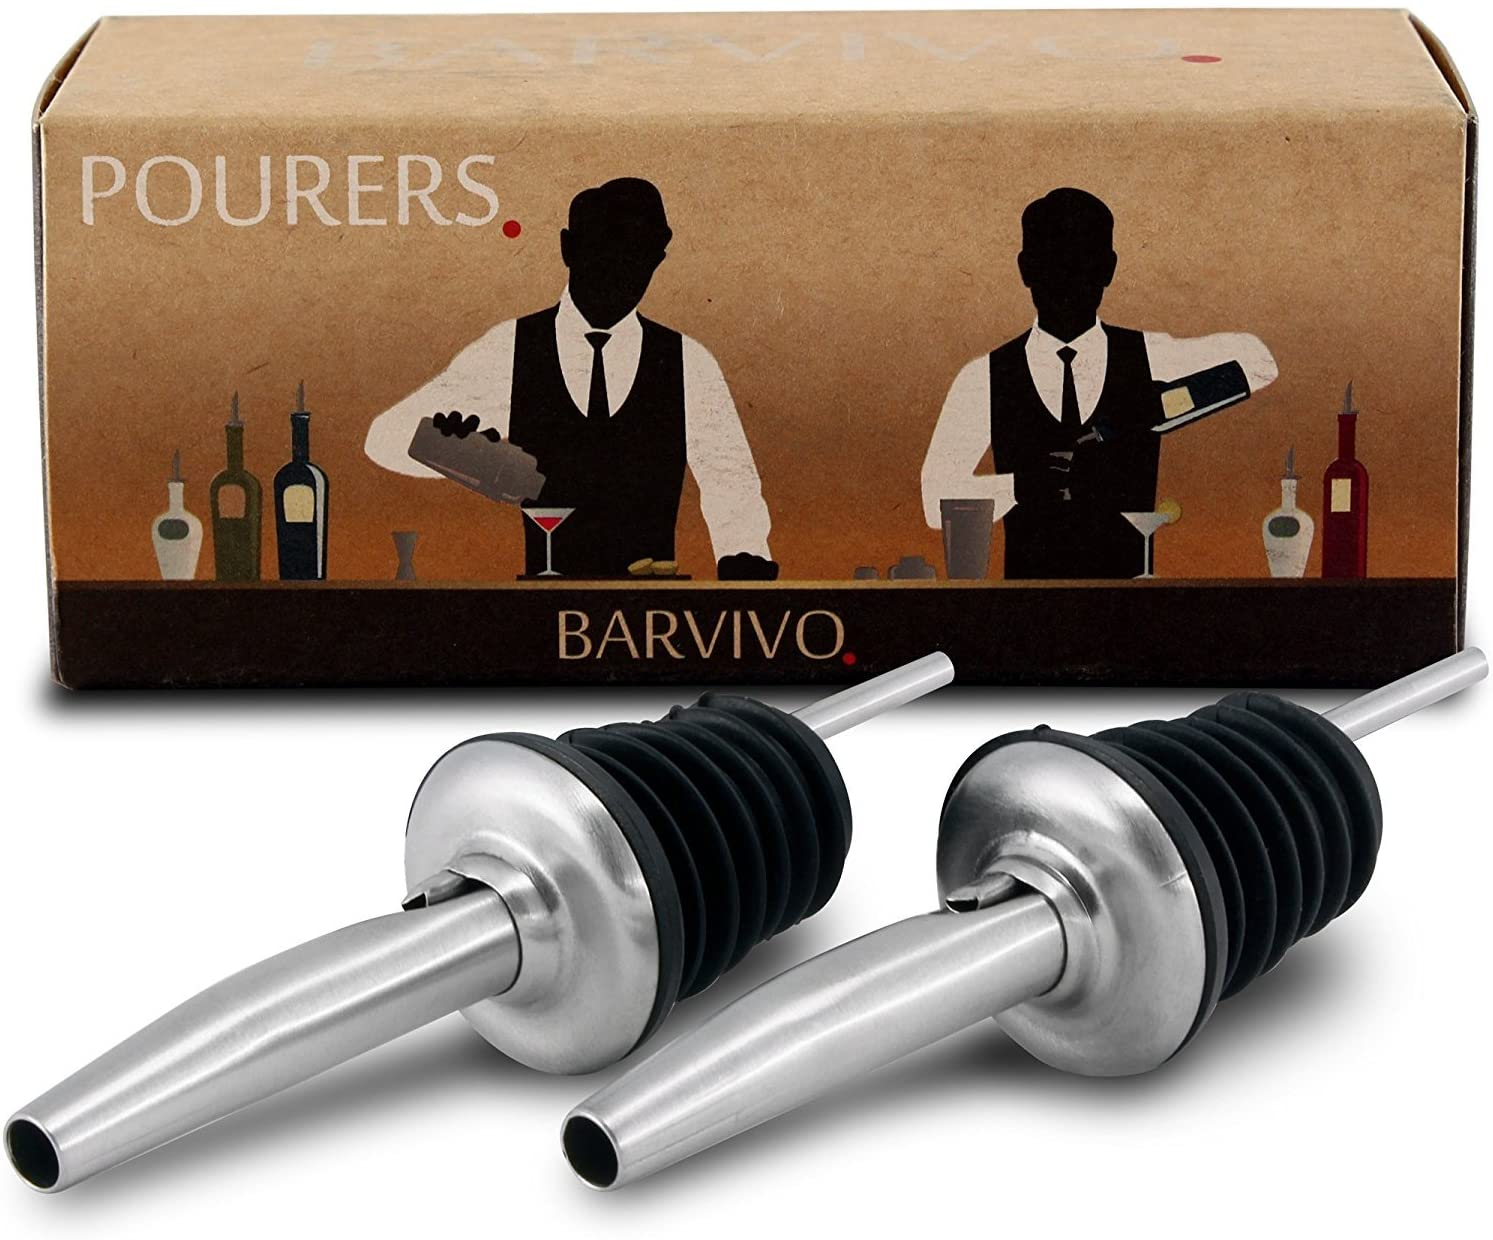 Professional Liquor Pourers Set of 2 by Barvivo - Classic Free Flow Bartender Bottle Pourer w/Tapered Spout, Fits Alcohol Bottles up to 1l. - Best for Pouring Wine, Spirits, Syrup and Olive Oil.